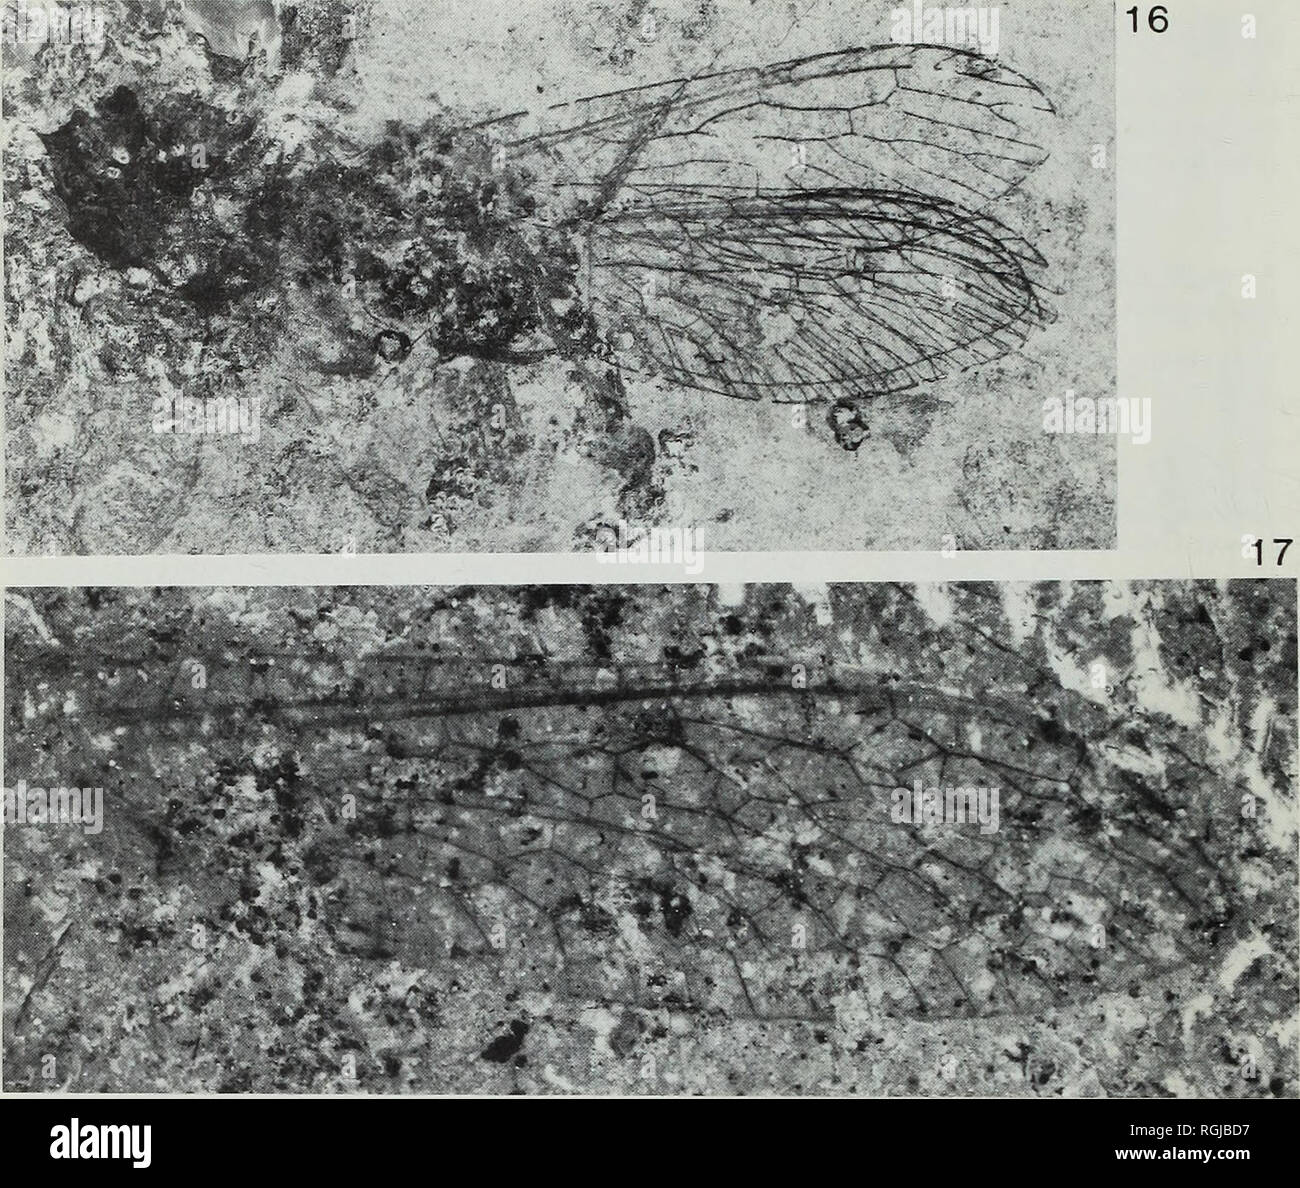 . Bulletin of the British Museum (Natural History), Geology. 62 P. E. S. WHALLEY. Fig. 16 Metaraphidia confusa Whalley. Holotype, GSM 117552. Lower Lias, Dorset (14-5 mm), British Geological Survey colln. Fig. 17 Priscaenigma obtusa Whalley. Holotype, 1.53898. Lower Lias, Dorset (12 6mm). Family BAISSOPTERIDAE Martynova, 1961 Genus PRISCAENIGMA Whalley, 1985 Priscaenigma obtusa Whalley 1985 Figs 14, 17 1985 Priscaenigma obtusa Whalley: 148; figs 43, 46. Holotype. In.53898, Black Ven, Charmouth, Dorset. Lower Jurassic. Dimensions: wing 12-6 mm. Discussion. Some doubt was expressed in the origin - Stock Image